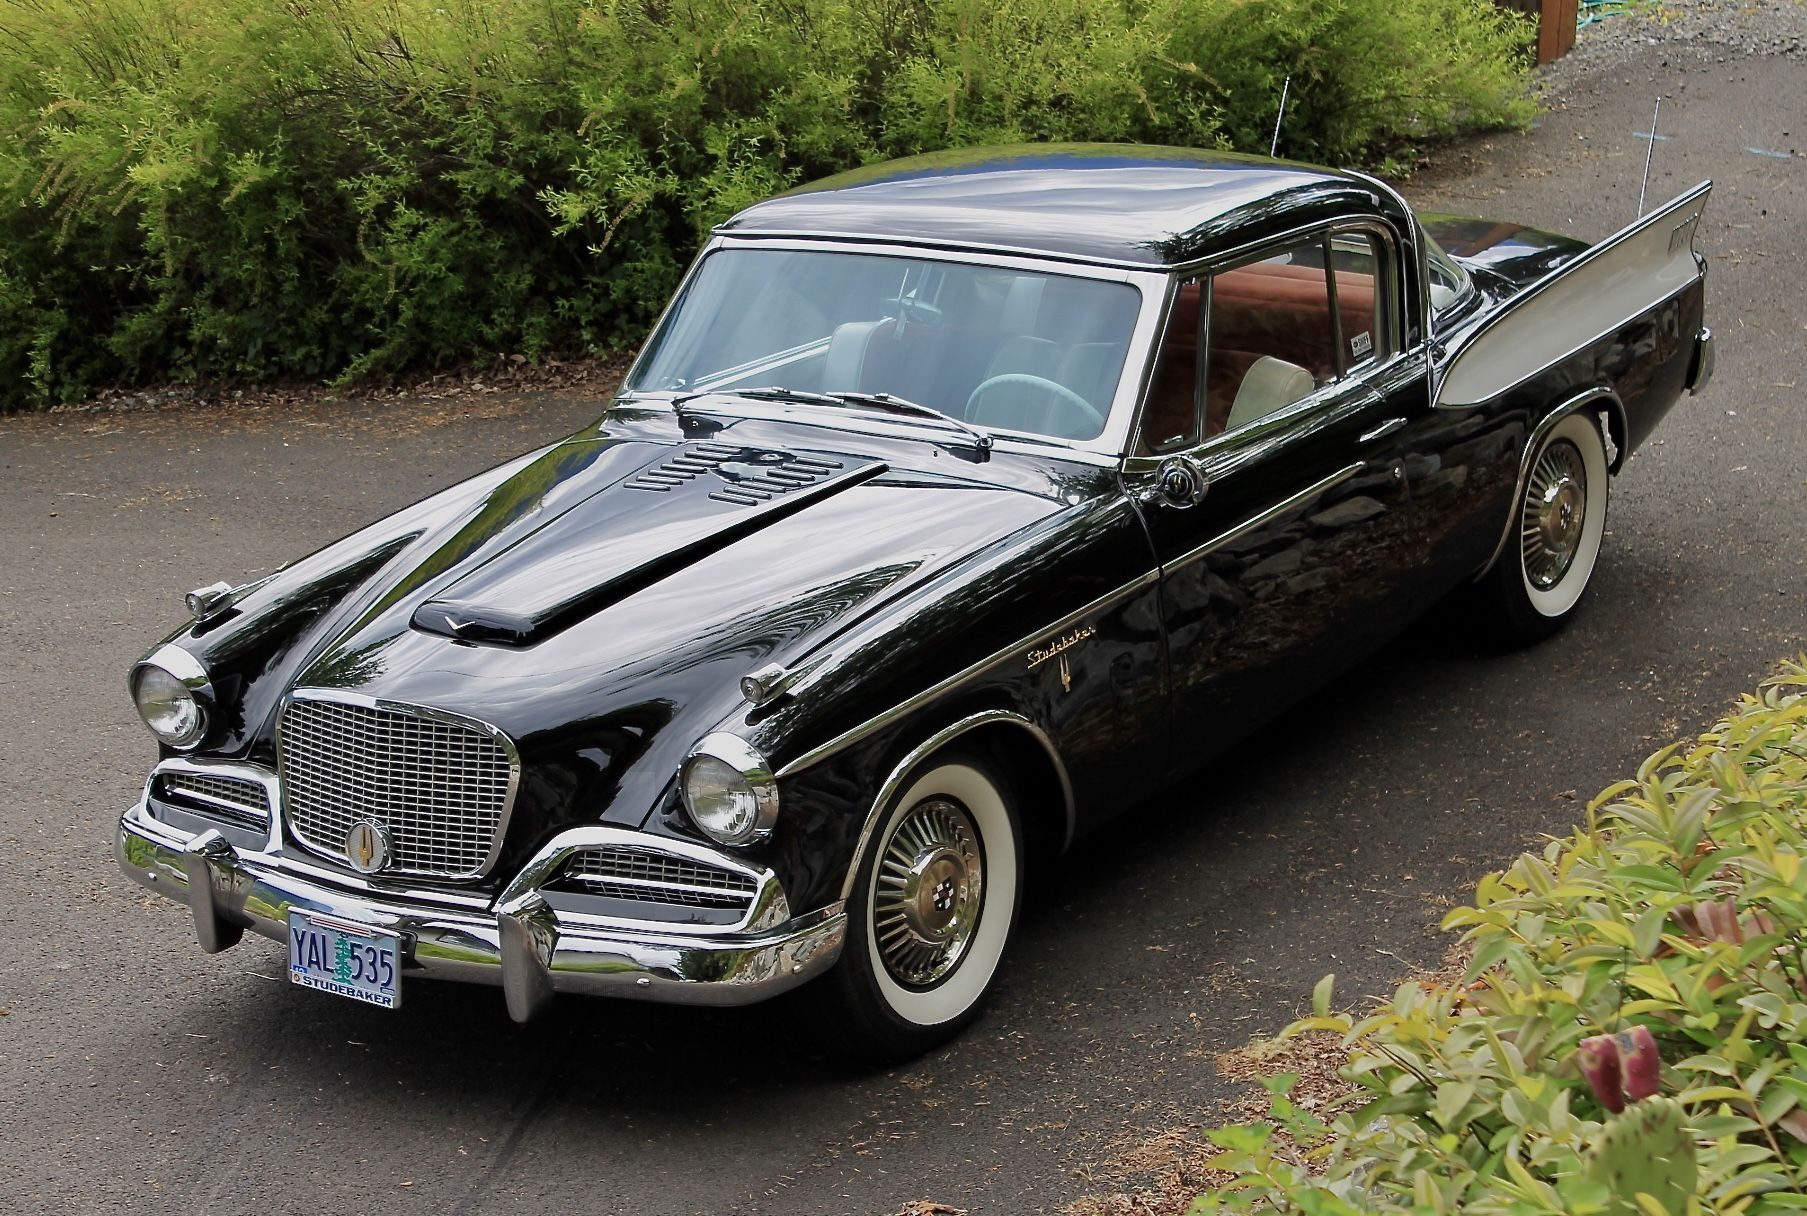 1958 studebaker golden hawk tap the link now for more inofrmation on unlimited roadside assitance